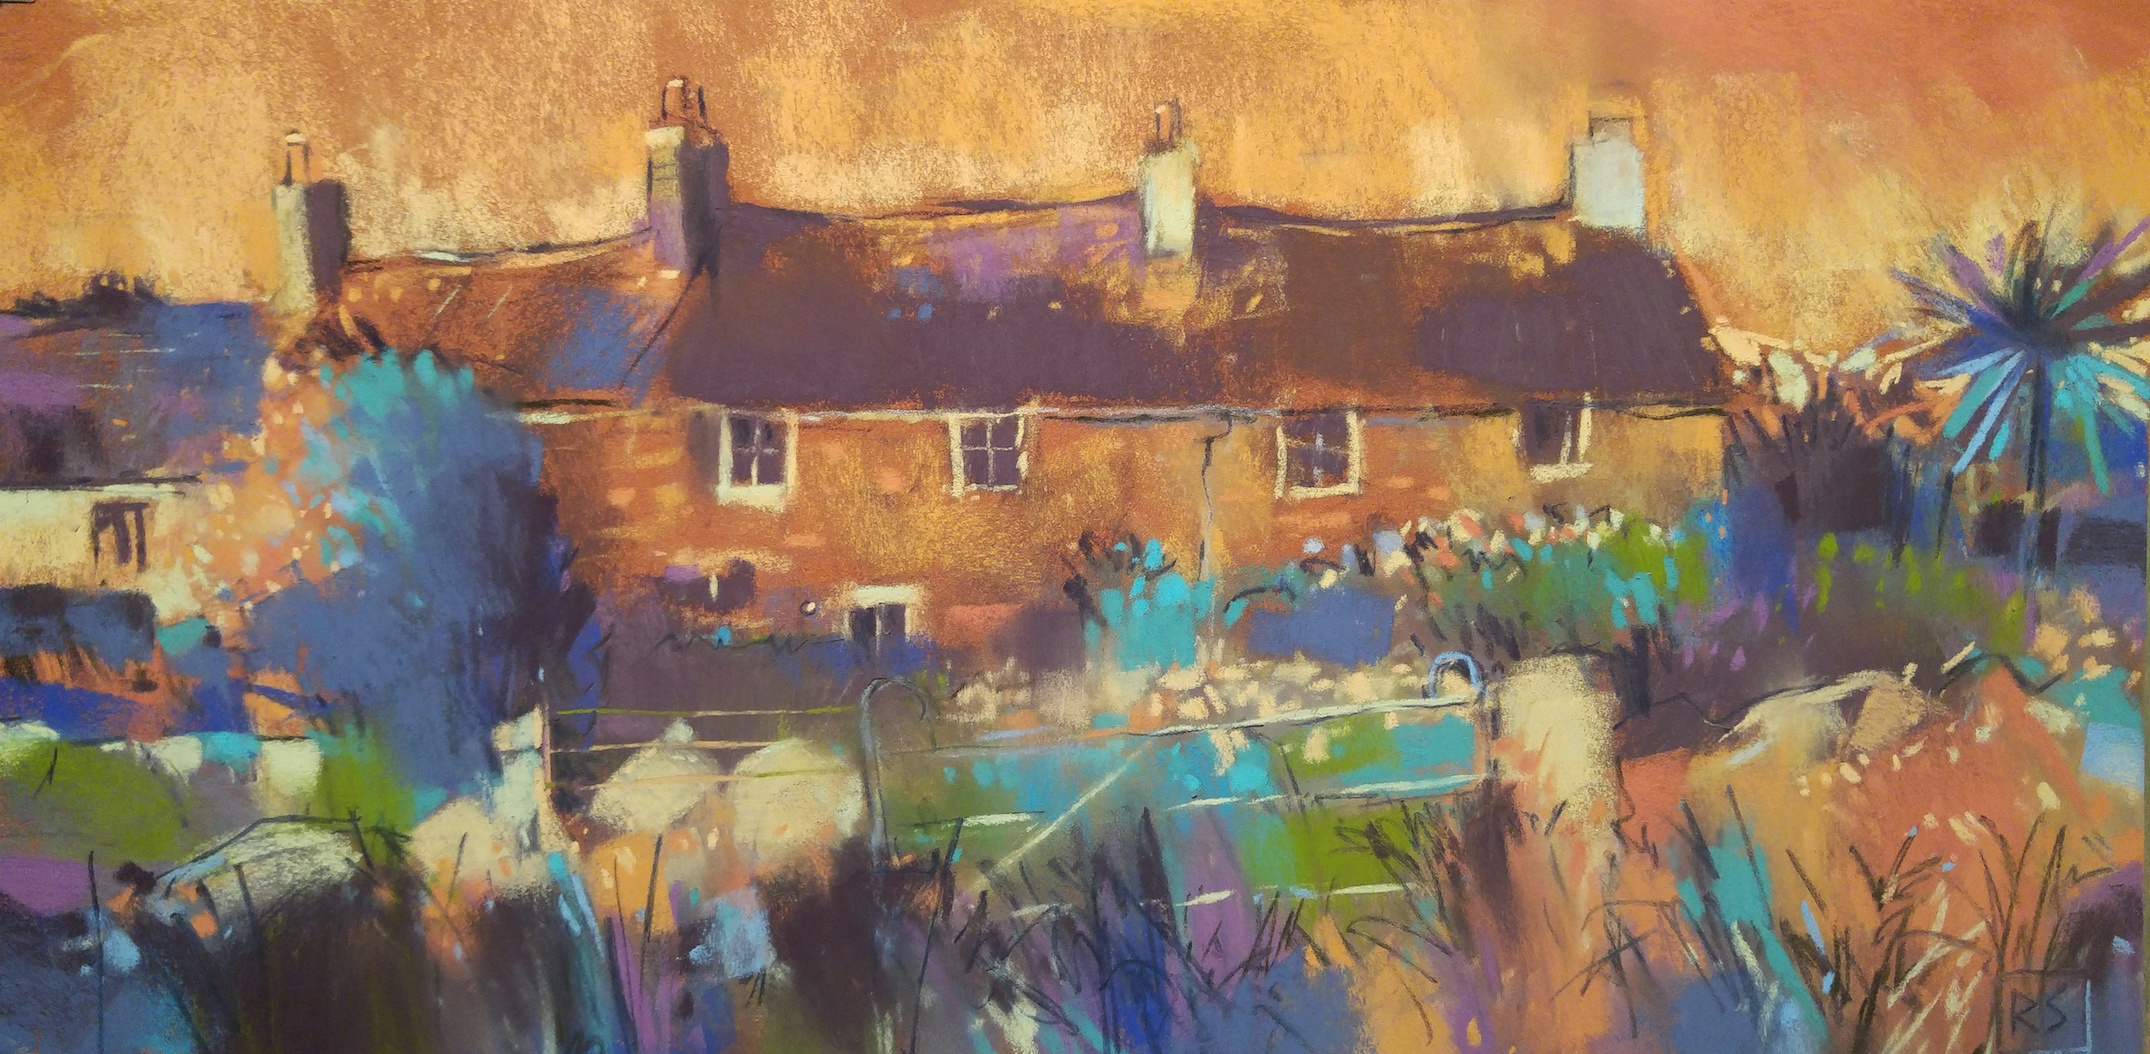 "Richard Suckling, ""Zennor Magic,"" pastel on Sennelier LaCarte, 19 ¾ x 9 ¾ in. A recent Cornish pastel based on a location sketch. Looser than my usual studio style benefiting from my plein air experience."